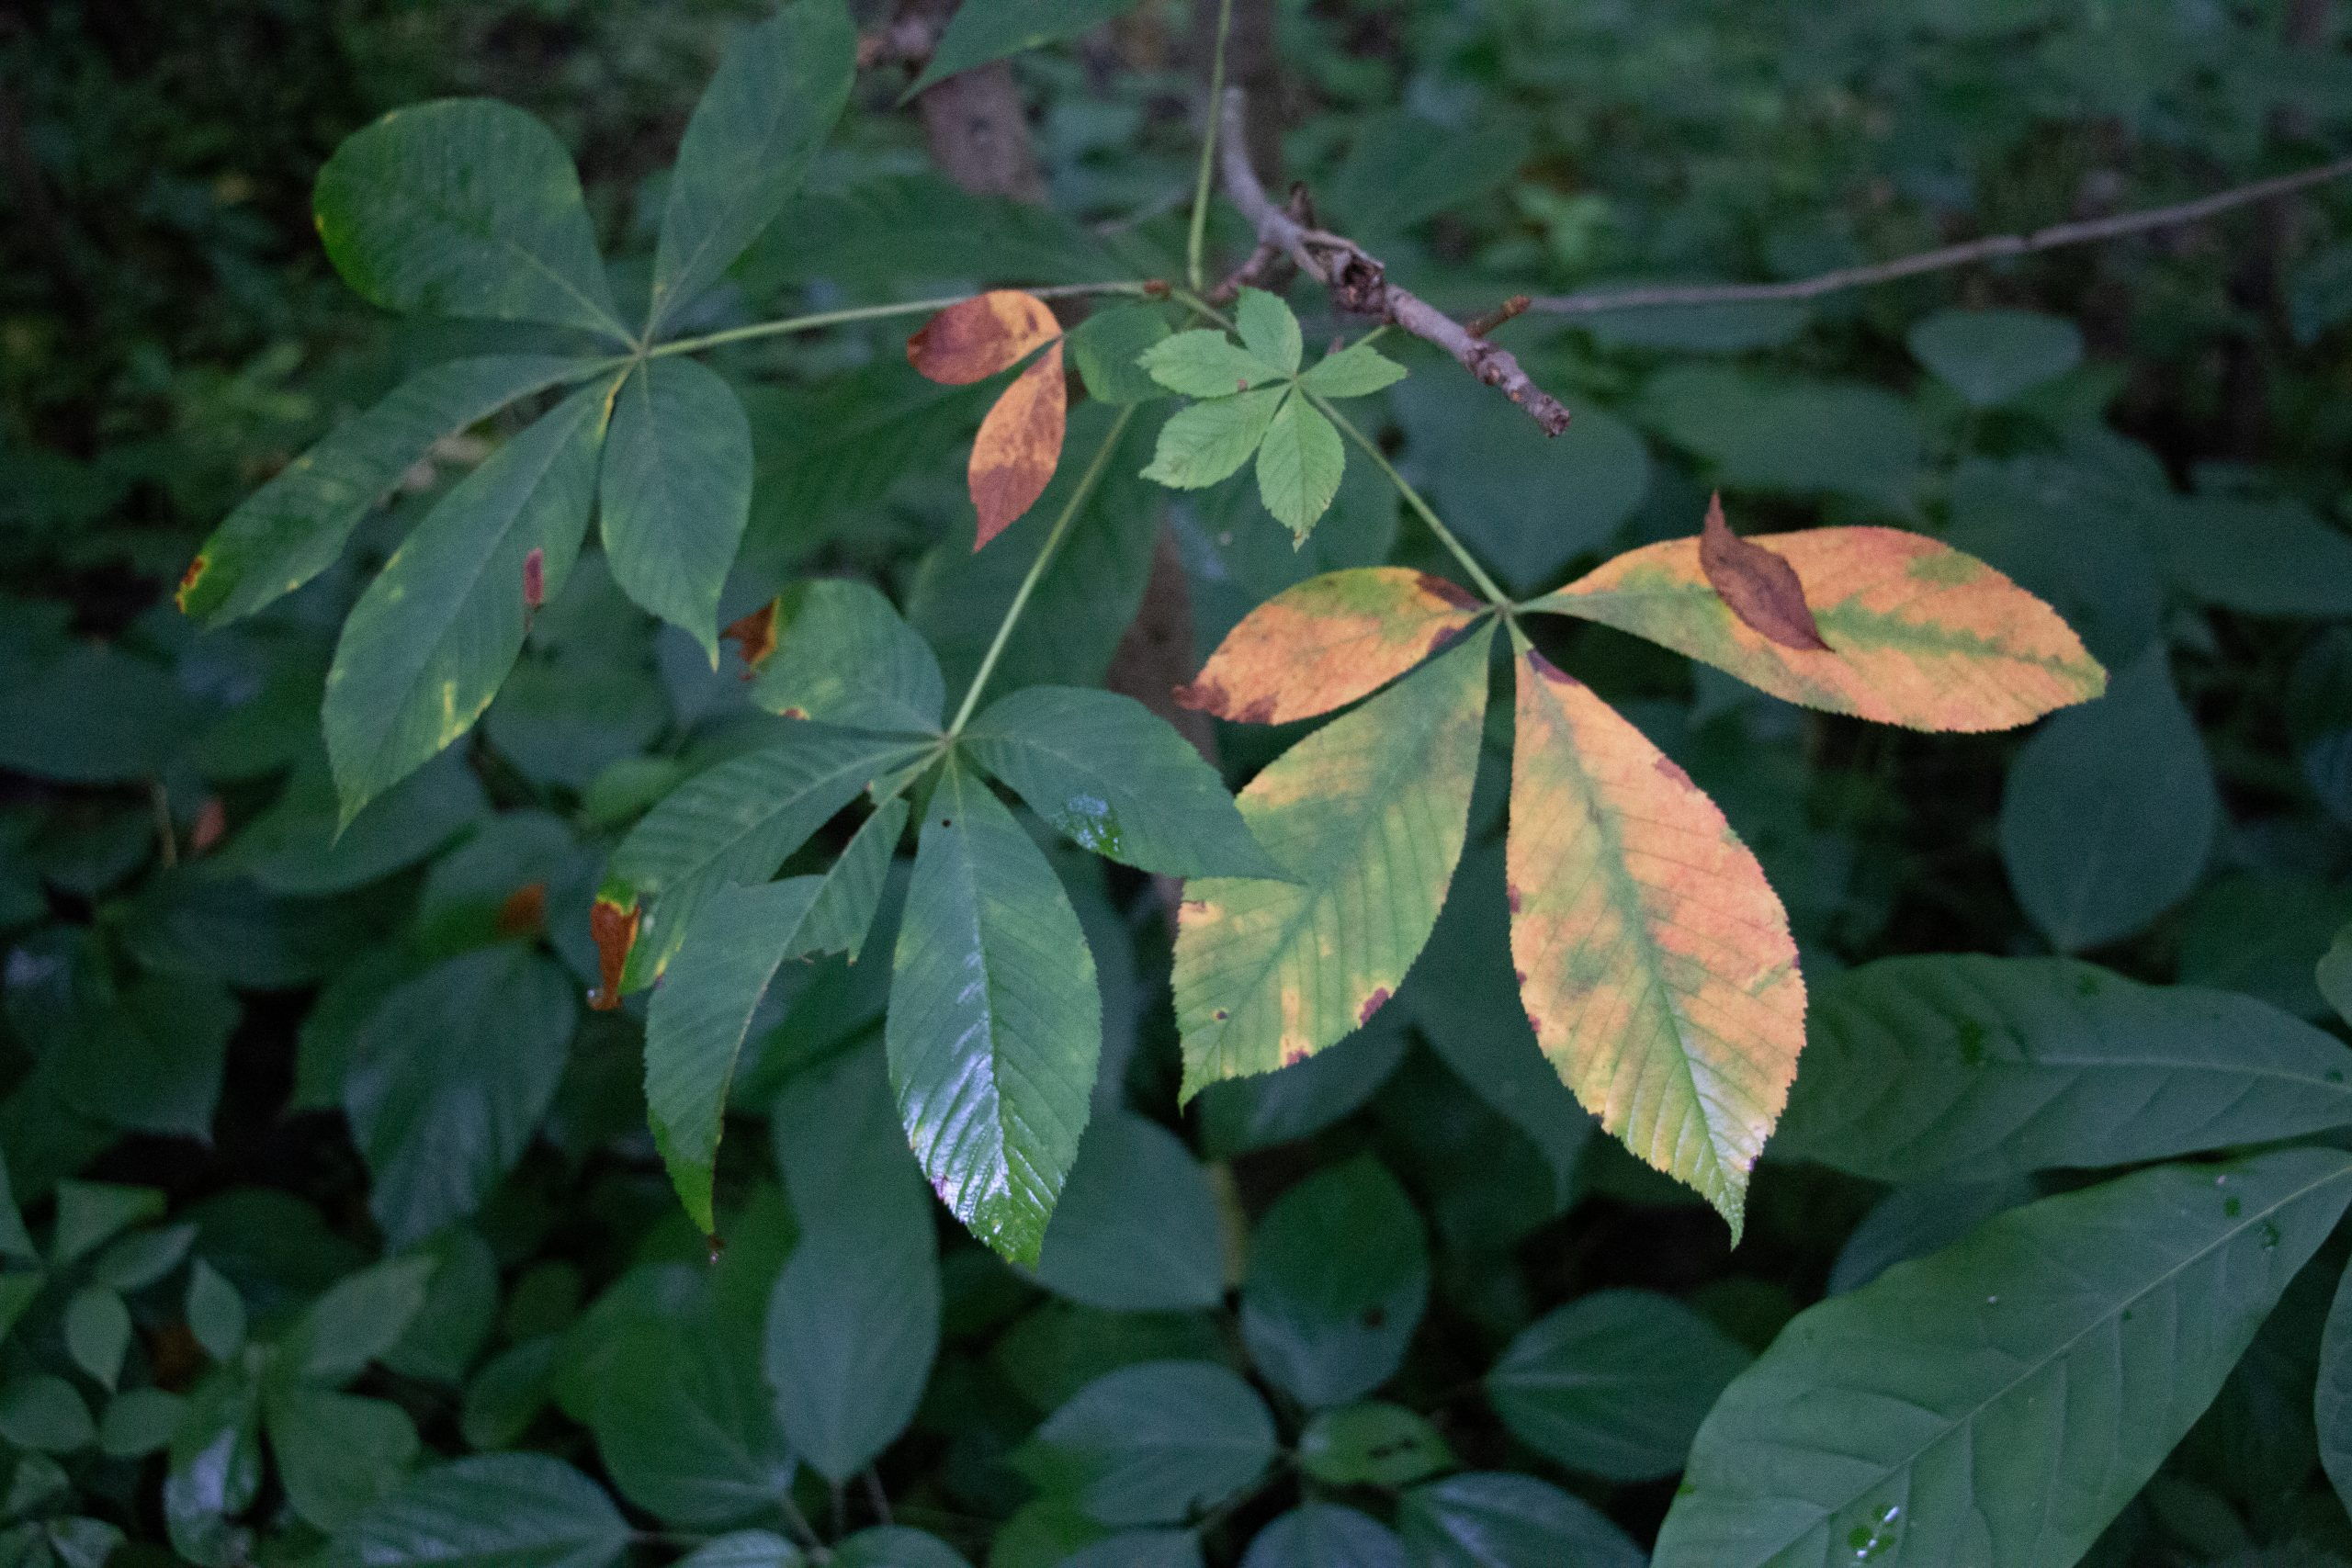 Green and yellow leaves on a branch.